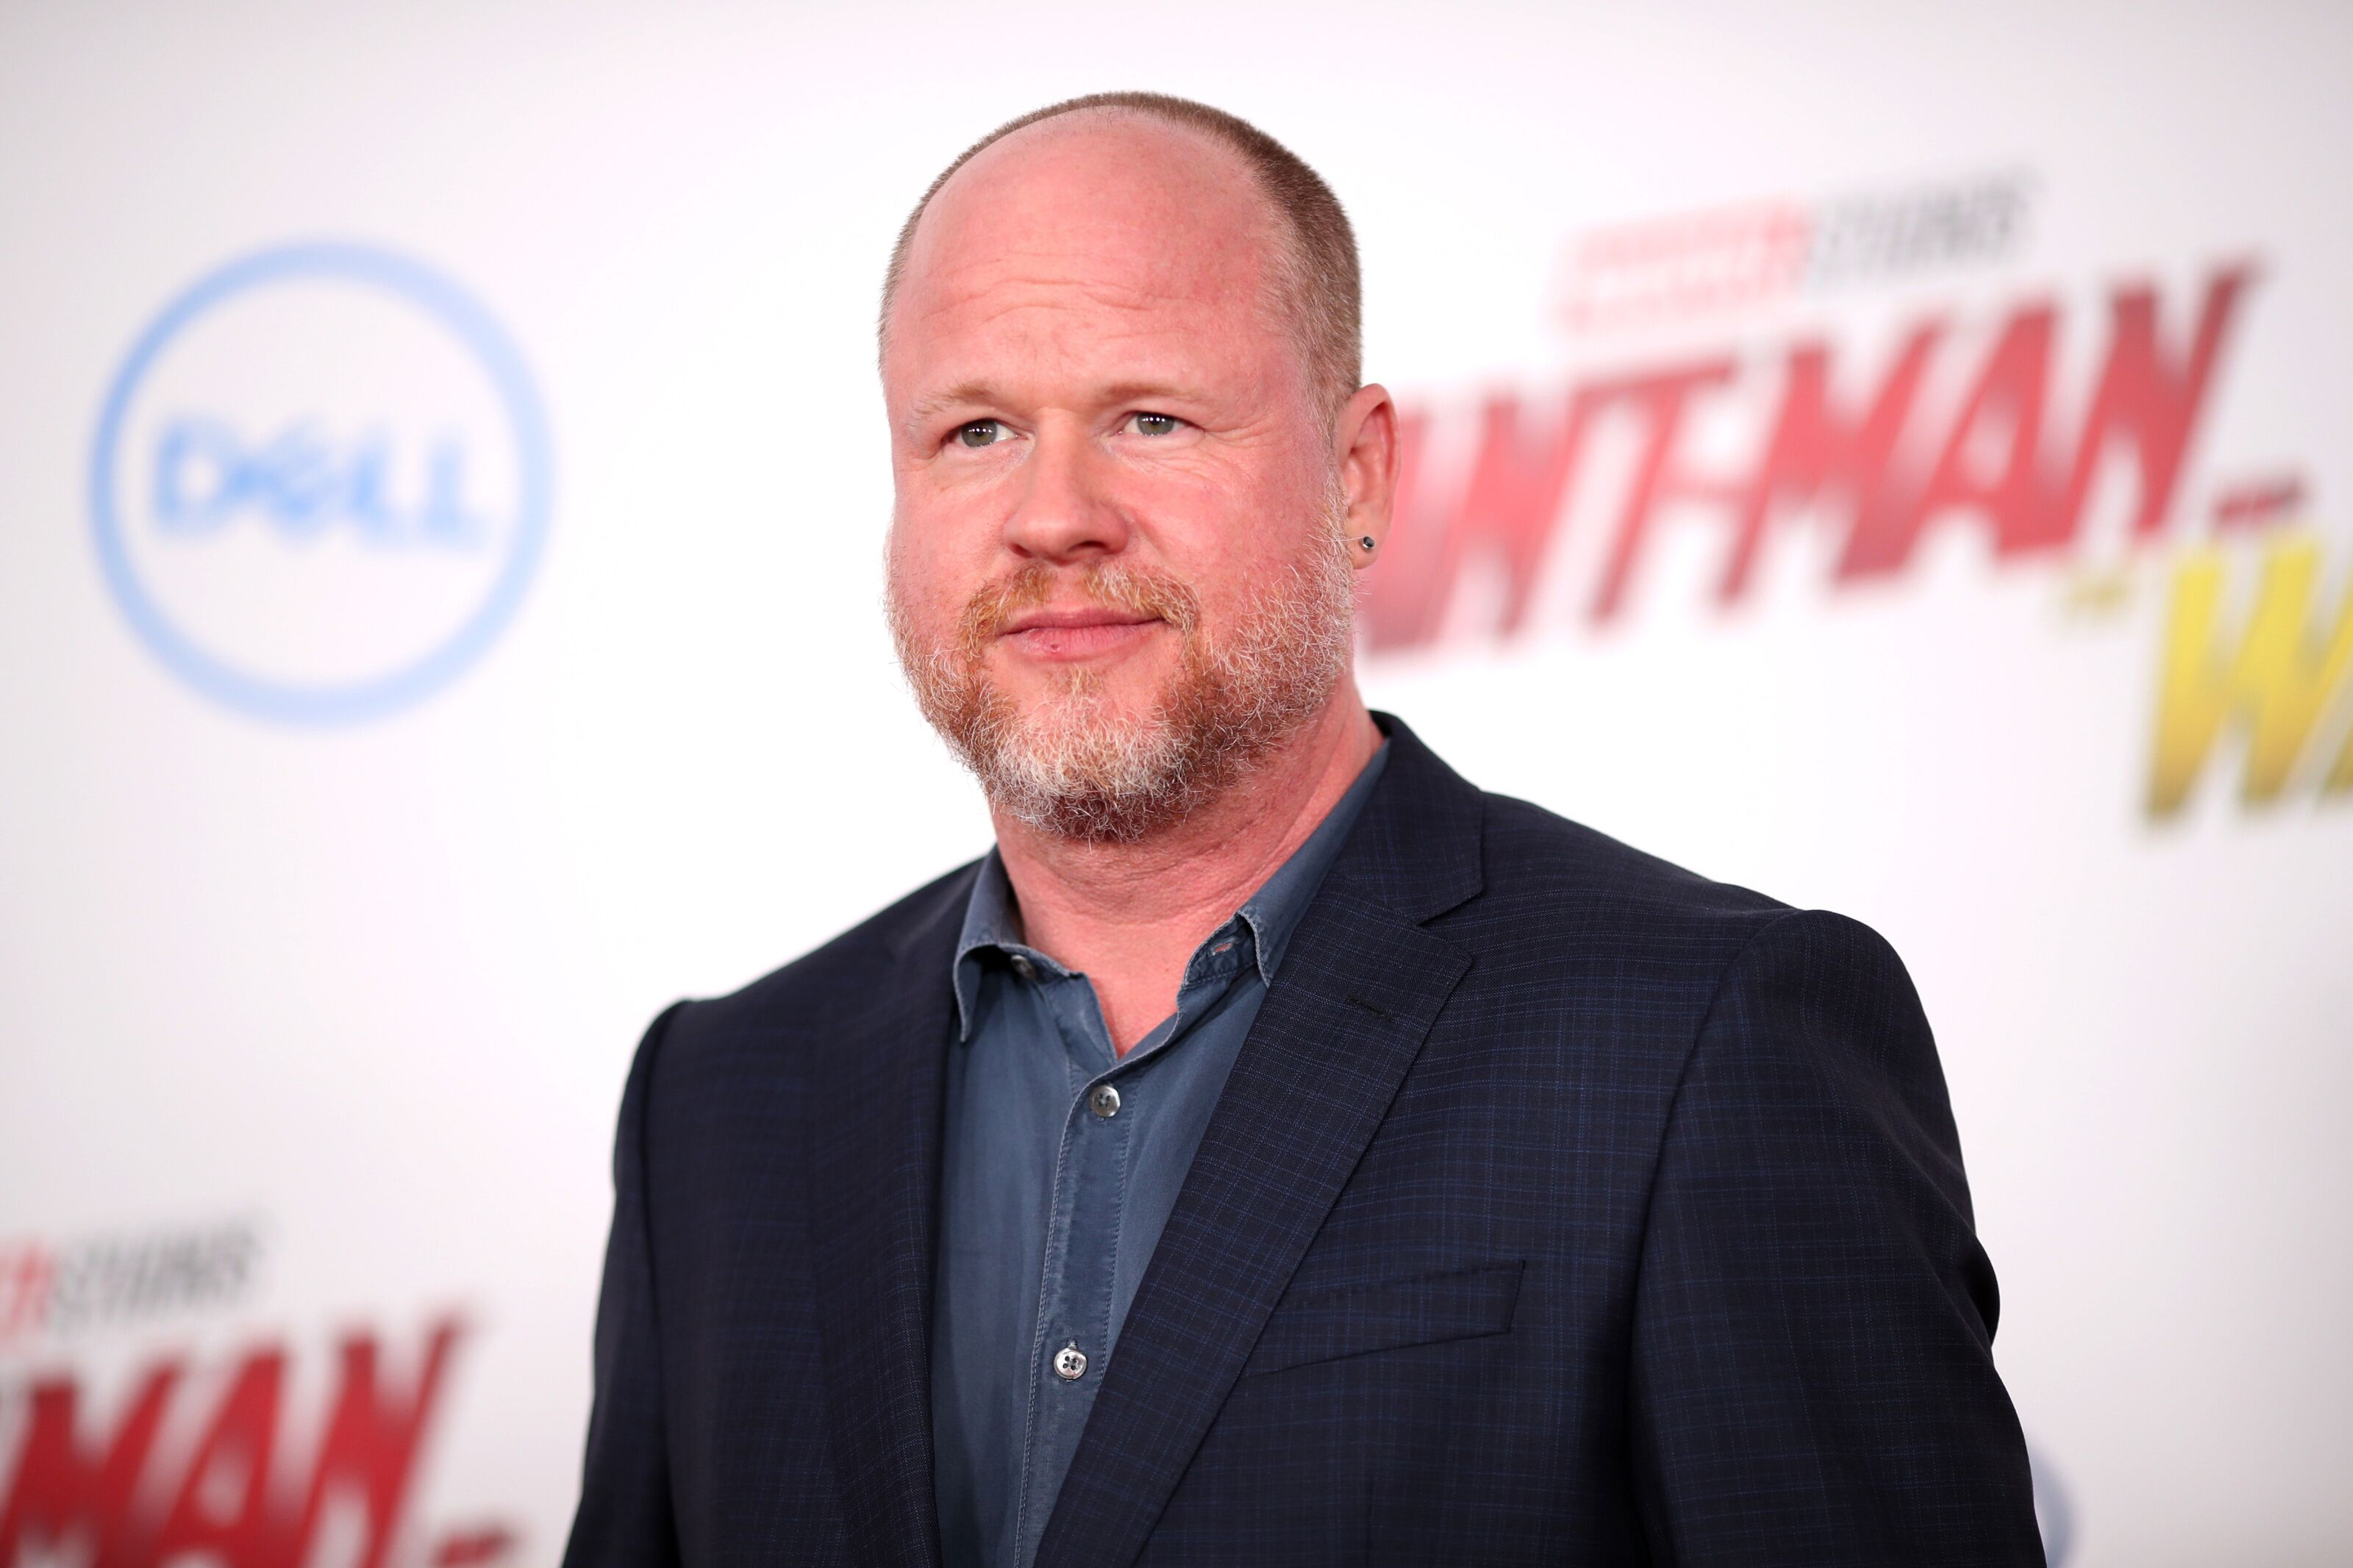 Filming wraps on the first episode of Joss Whedon's The Nevers